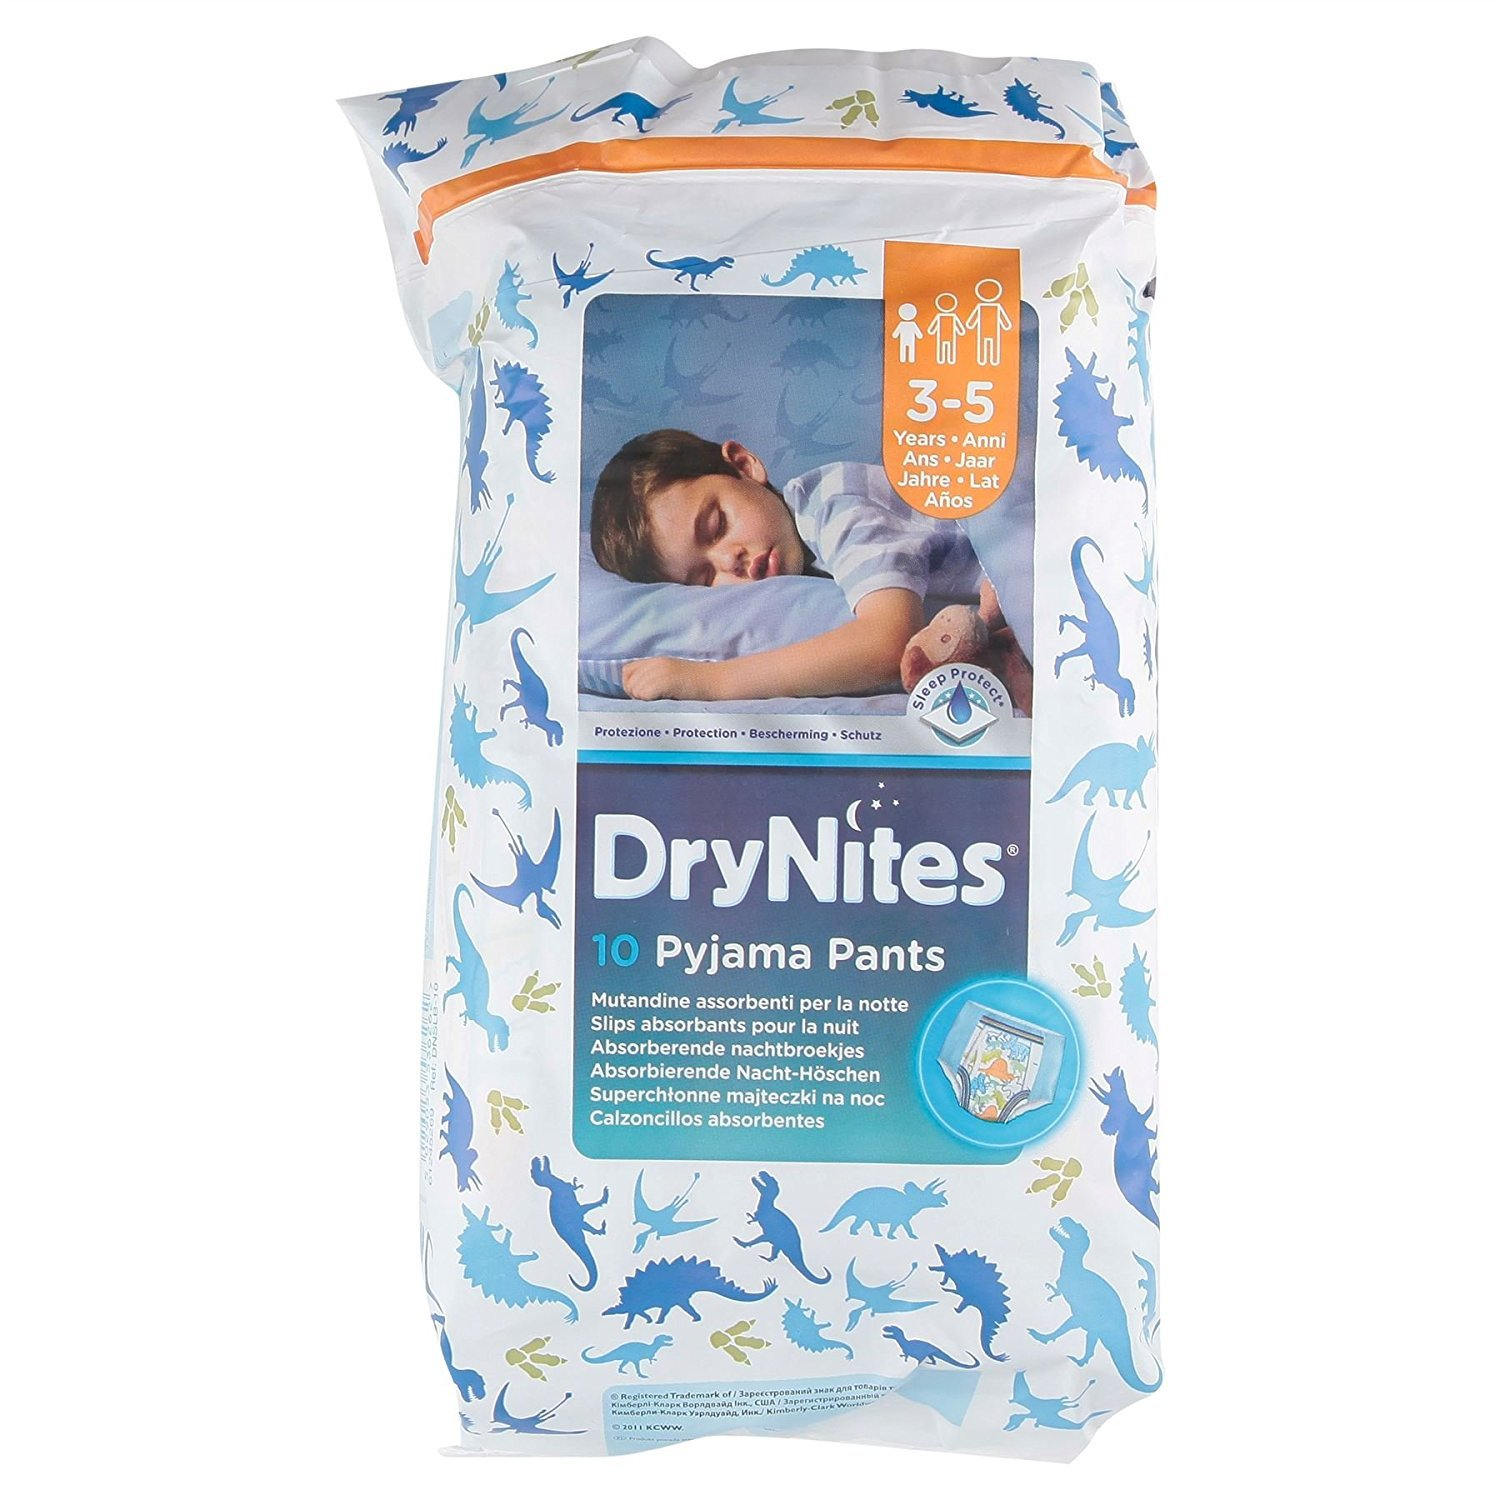 DryNites 3-5 Years Boys 10 Pyjama Pants Live in Morrisons